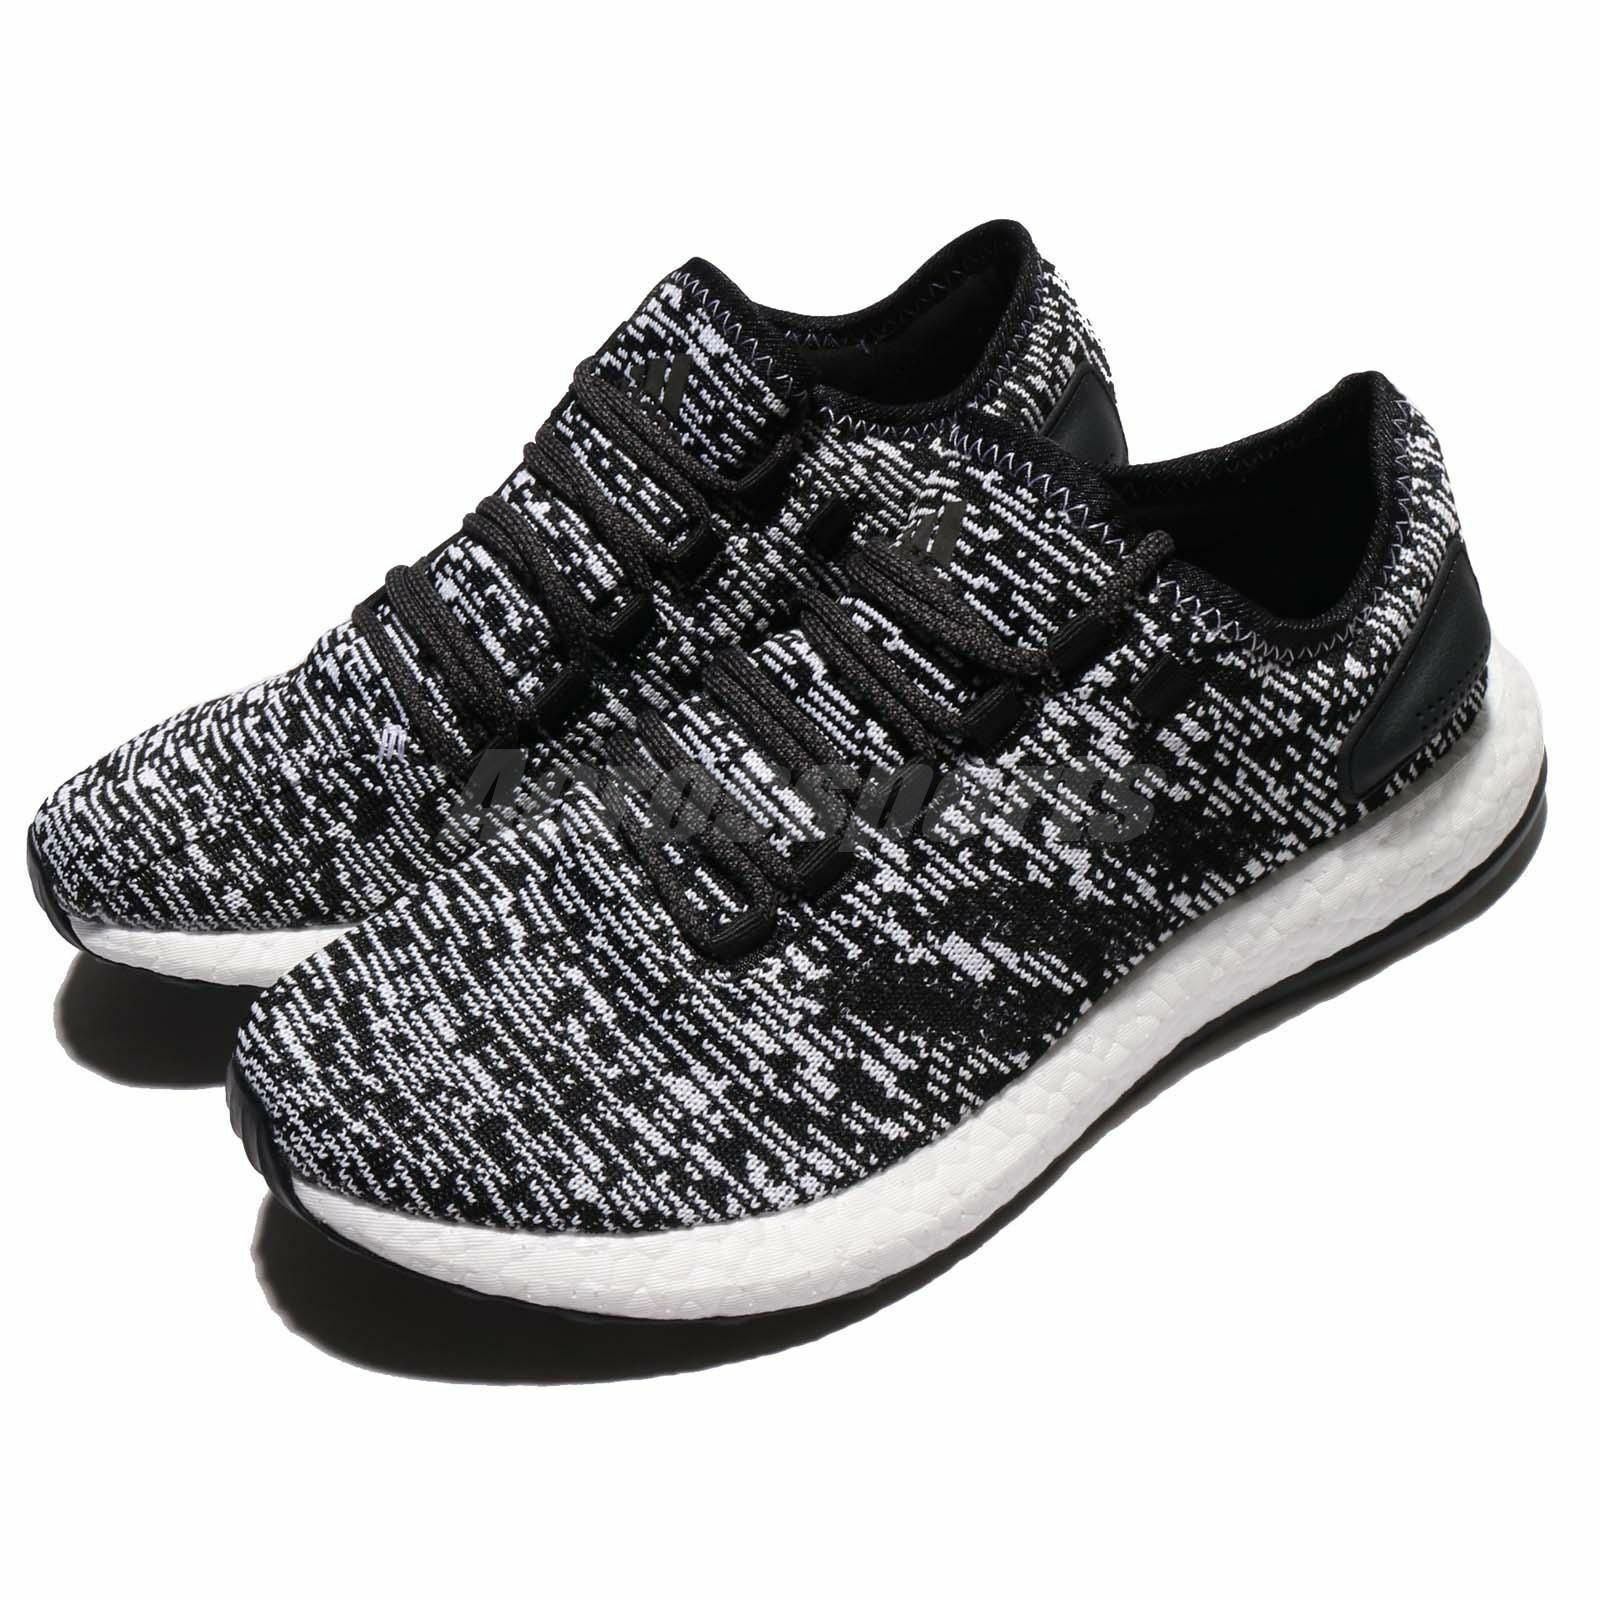 Adidas Men's Pure Boost Running shoes - Black White size 12   model s81995